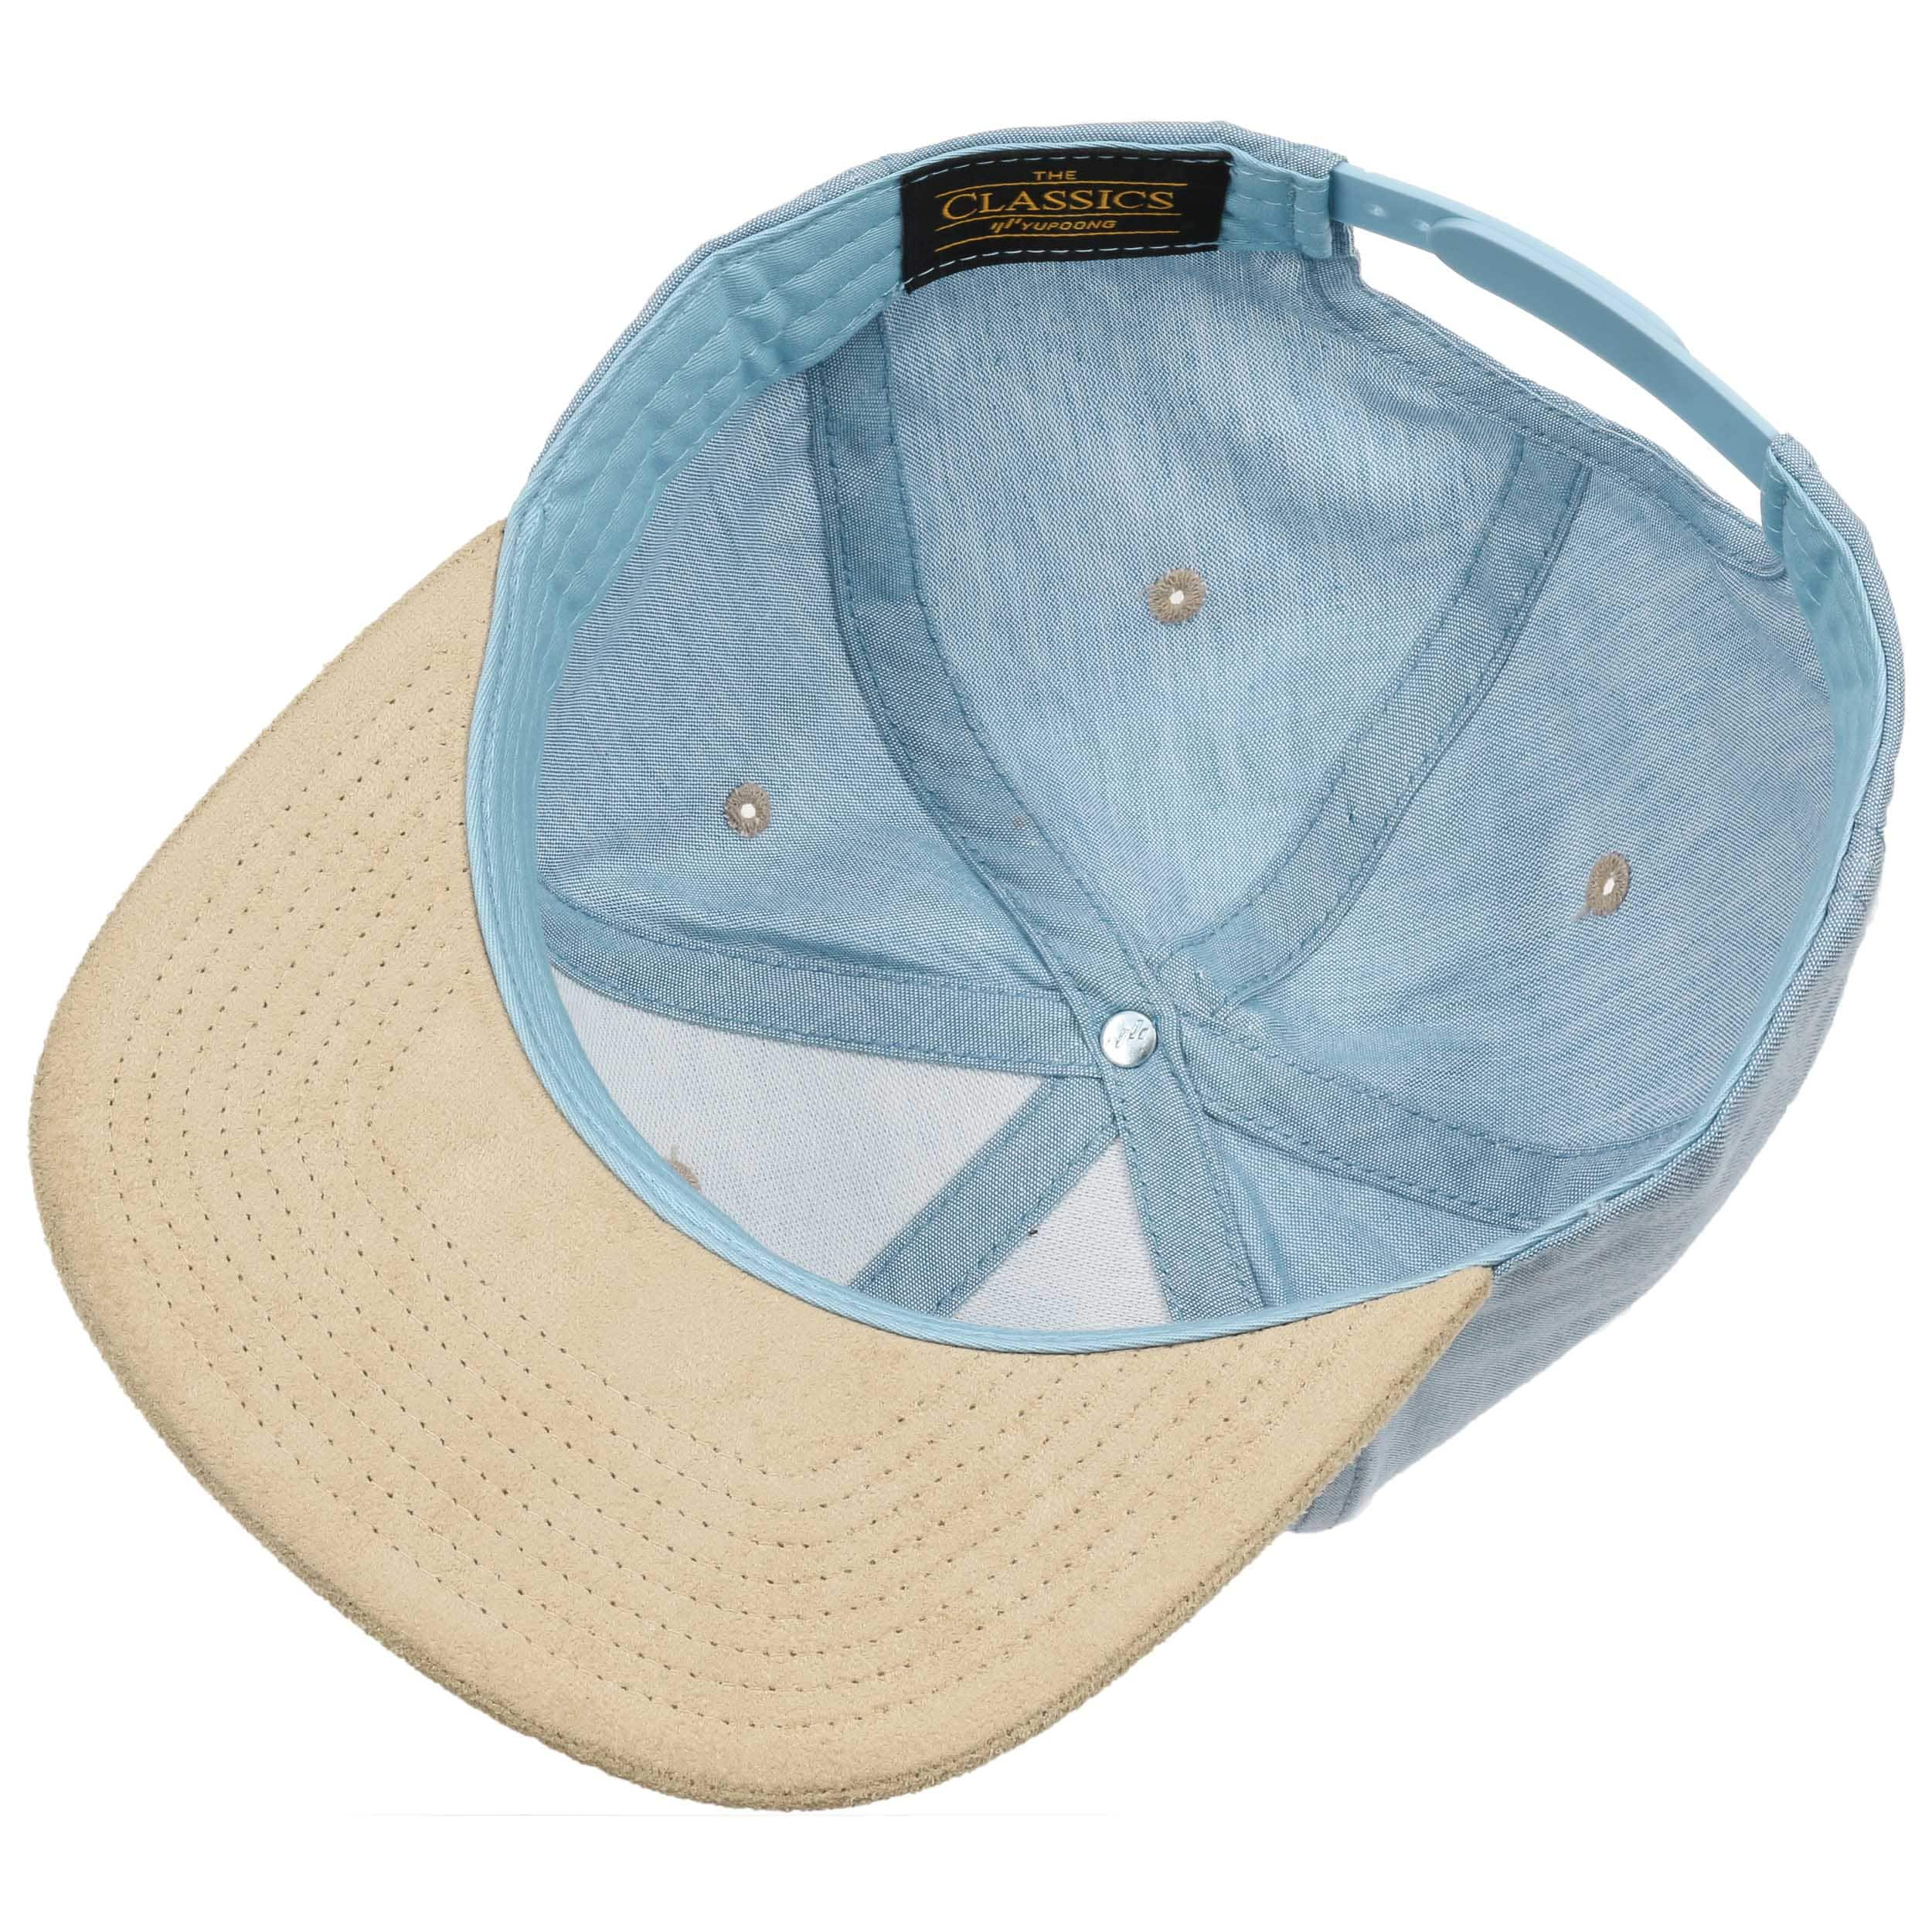 ... 1 · Chambray Suede Snapback Cap - black 2 · Chambray Suede Snapback Cap  - light blue 2 ... 60c8f37b93e9